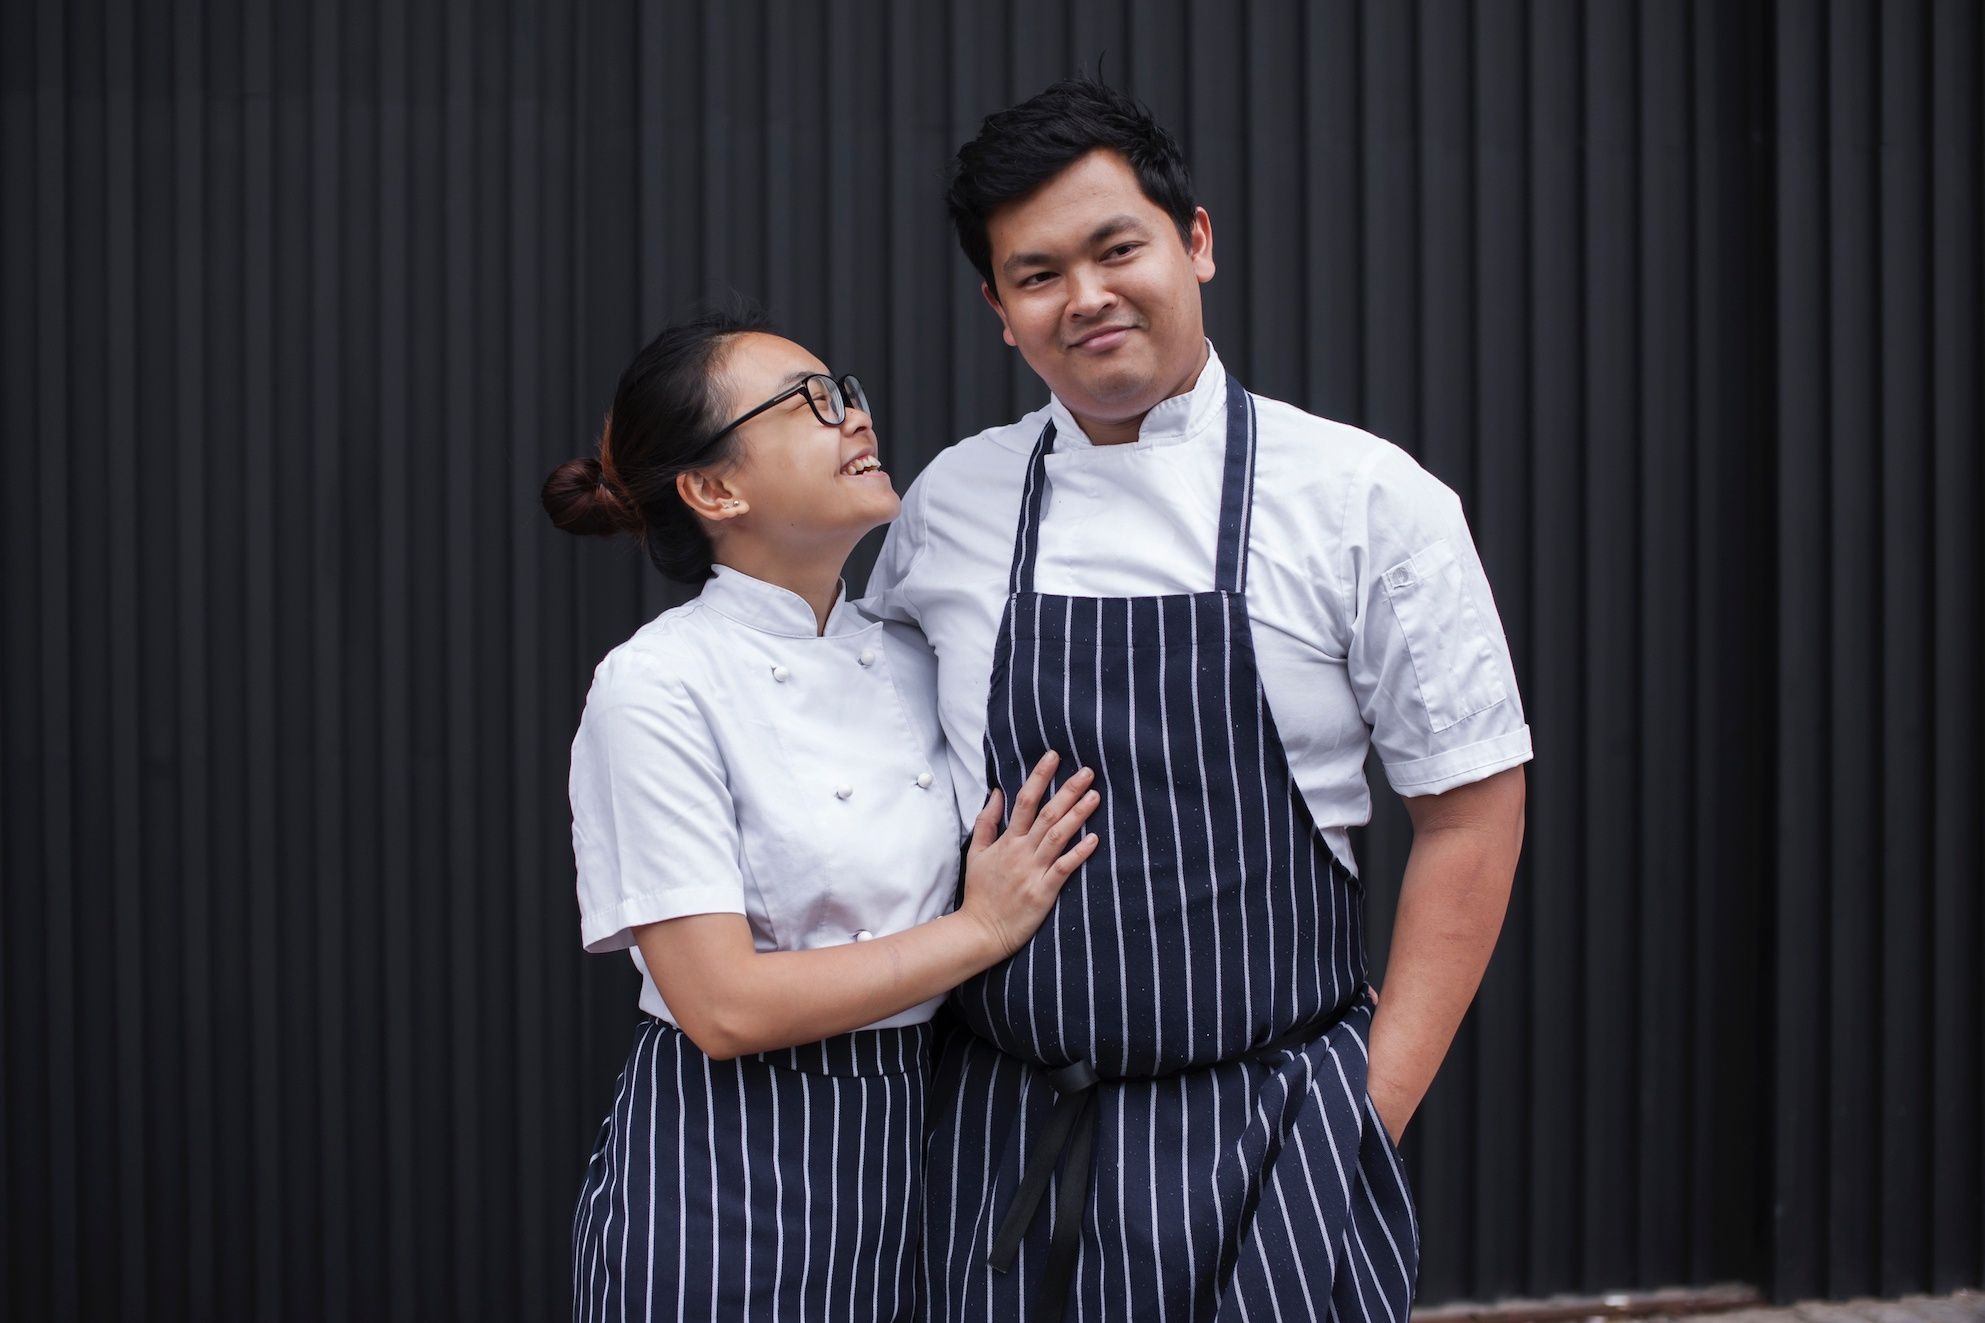 Rising Thai Talents To Present A Modern South-East Asian Cuisine Pop-Up At Test Kitchen